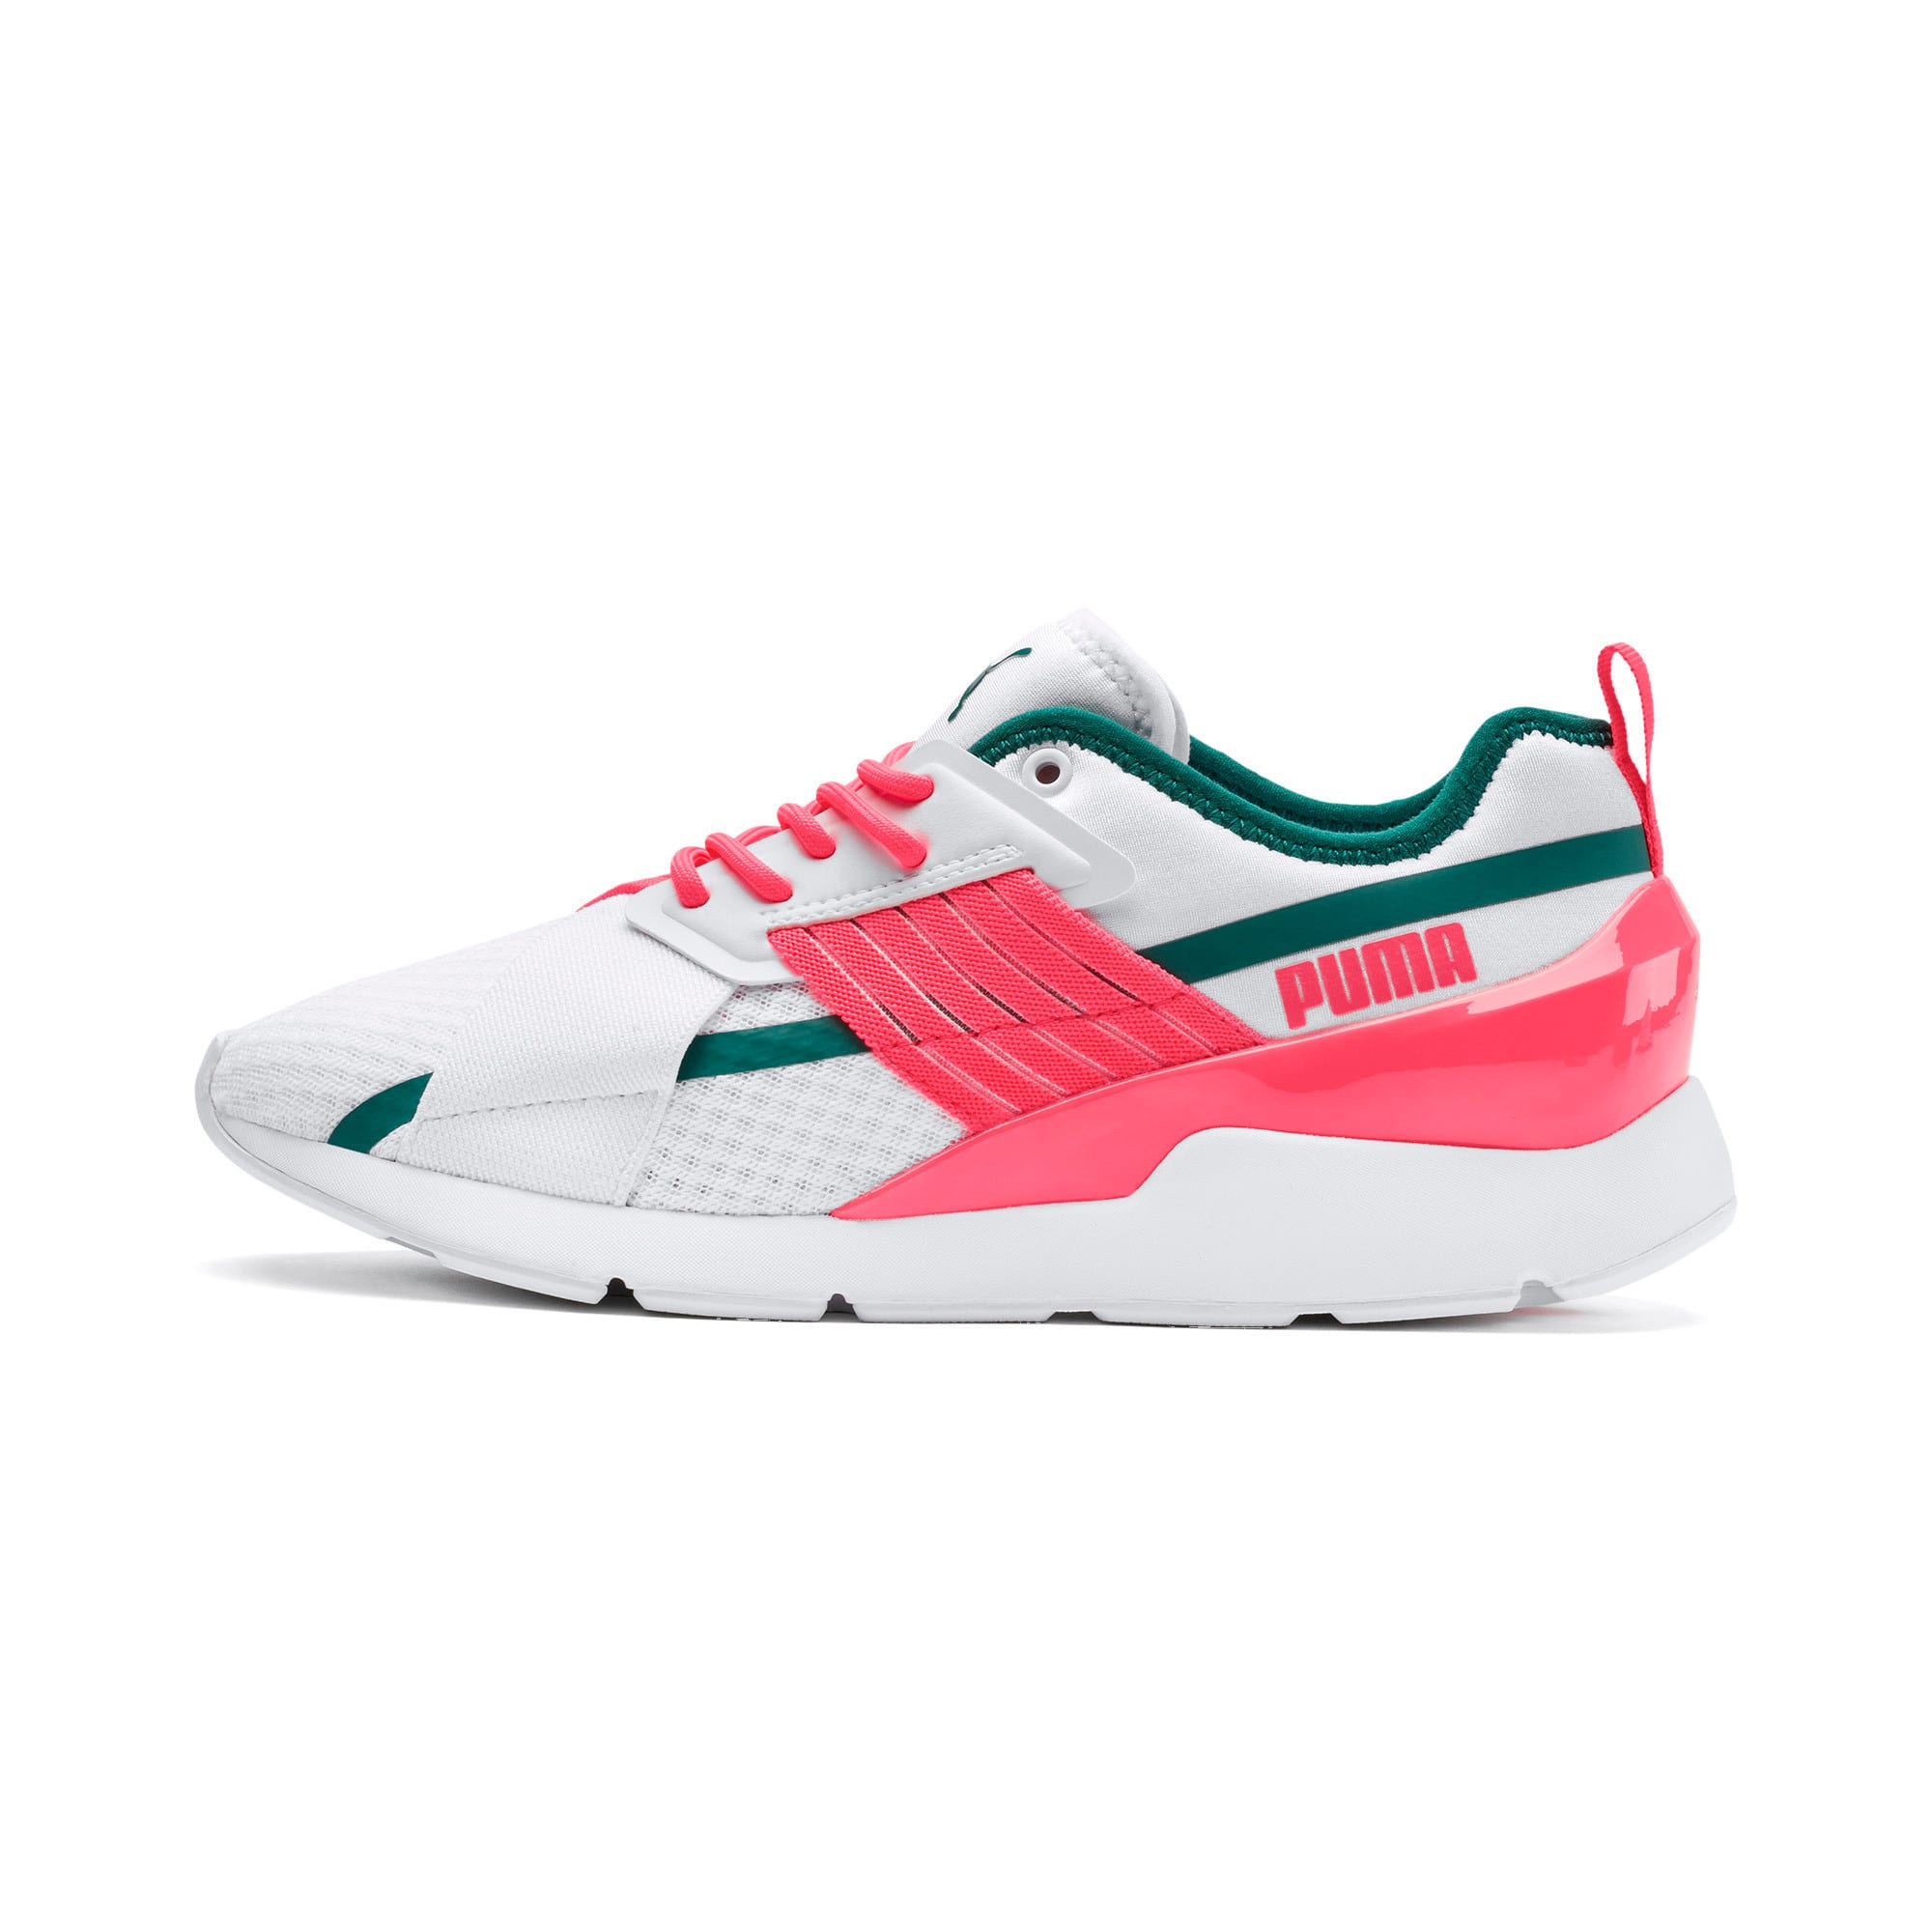 Thumbnail 1 of Muse X-2 Women's Trainers, Puma White-Pink Alert, medium-IND